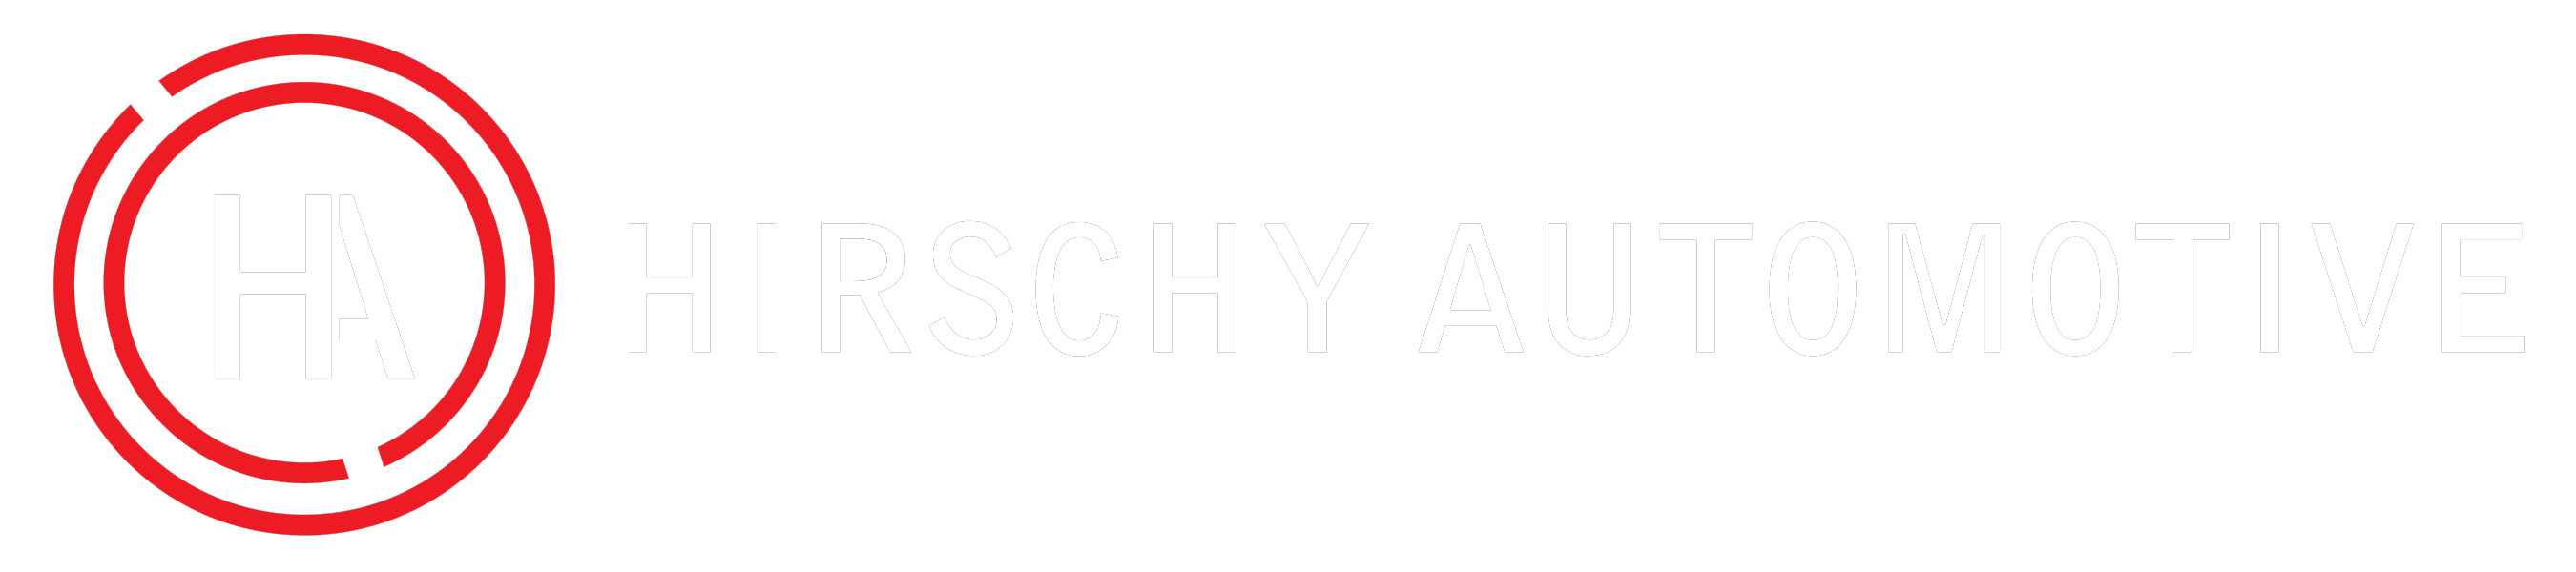 Hirschy Automotive